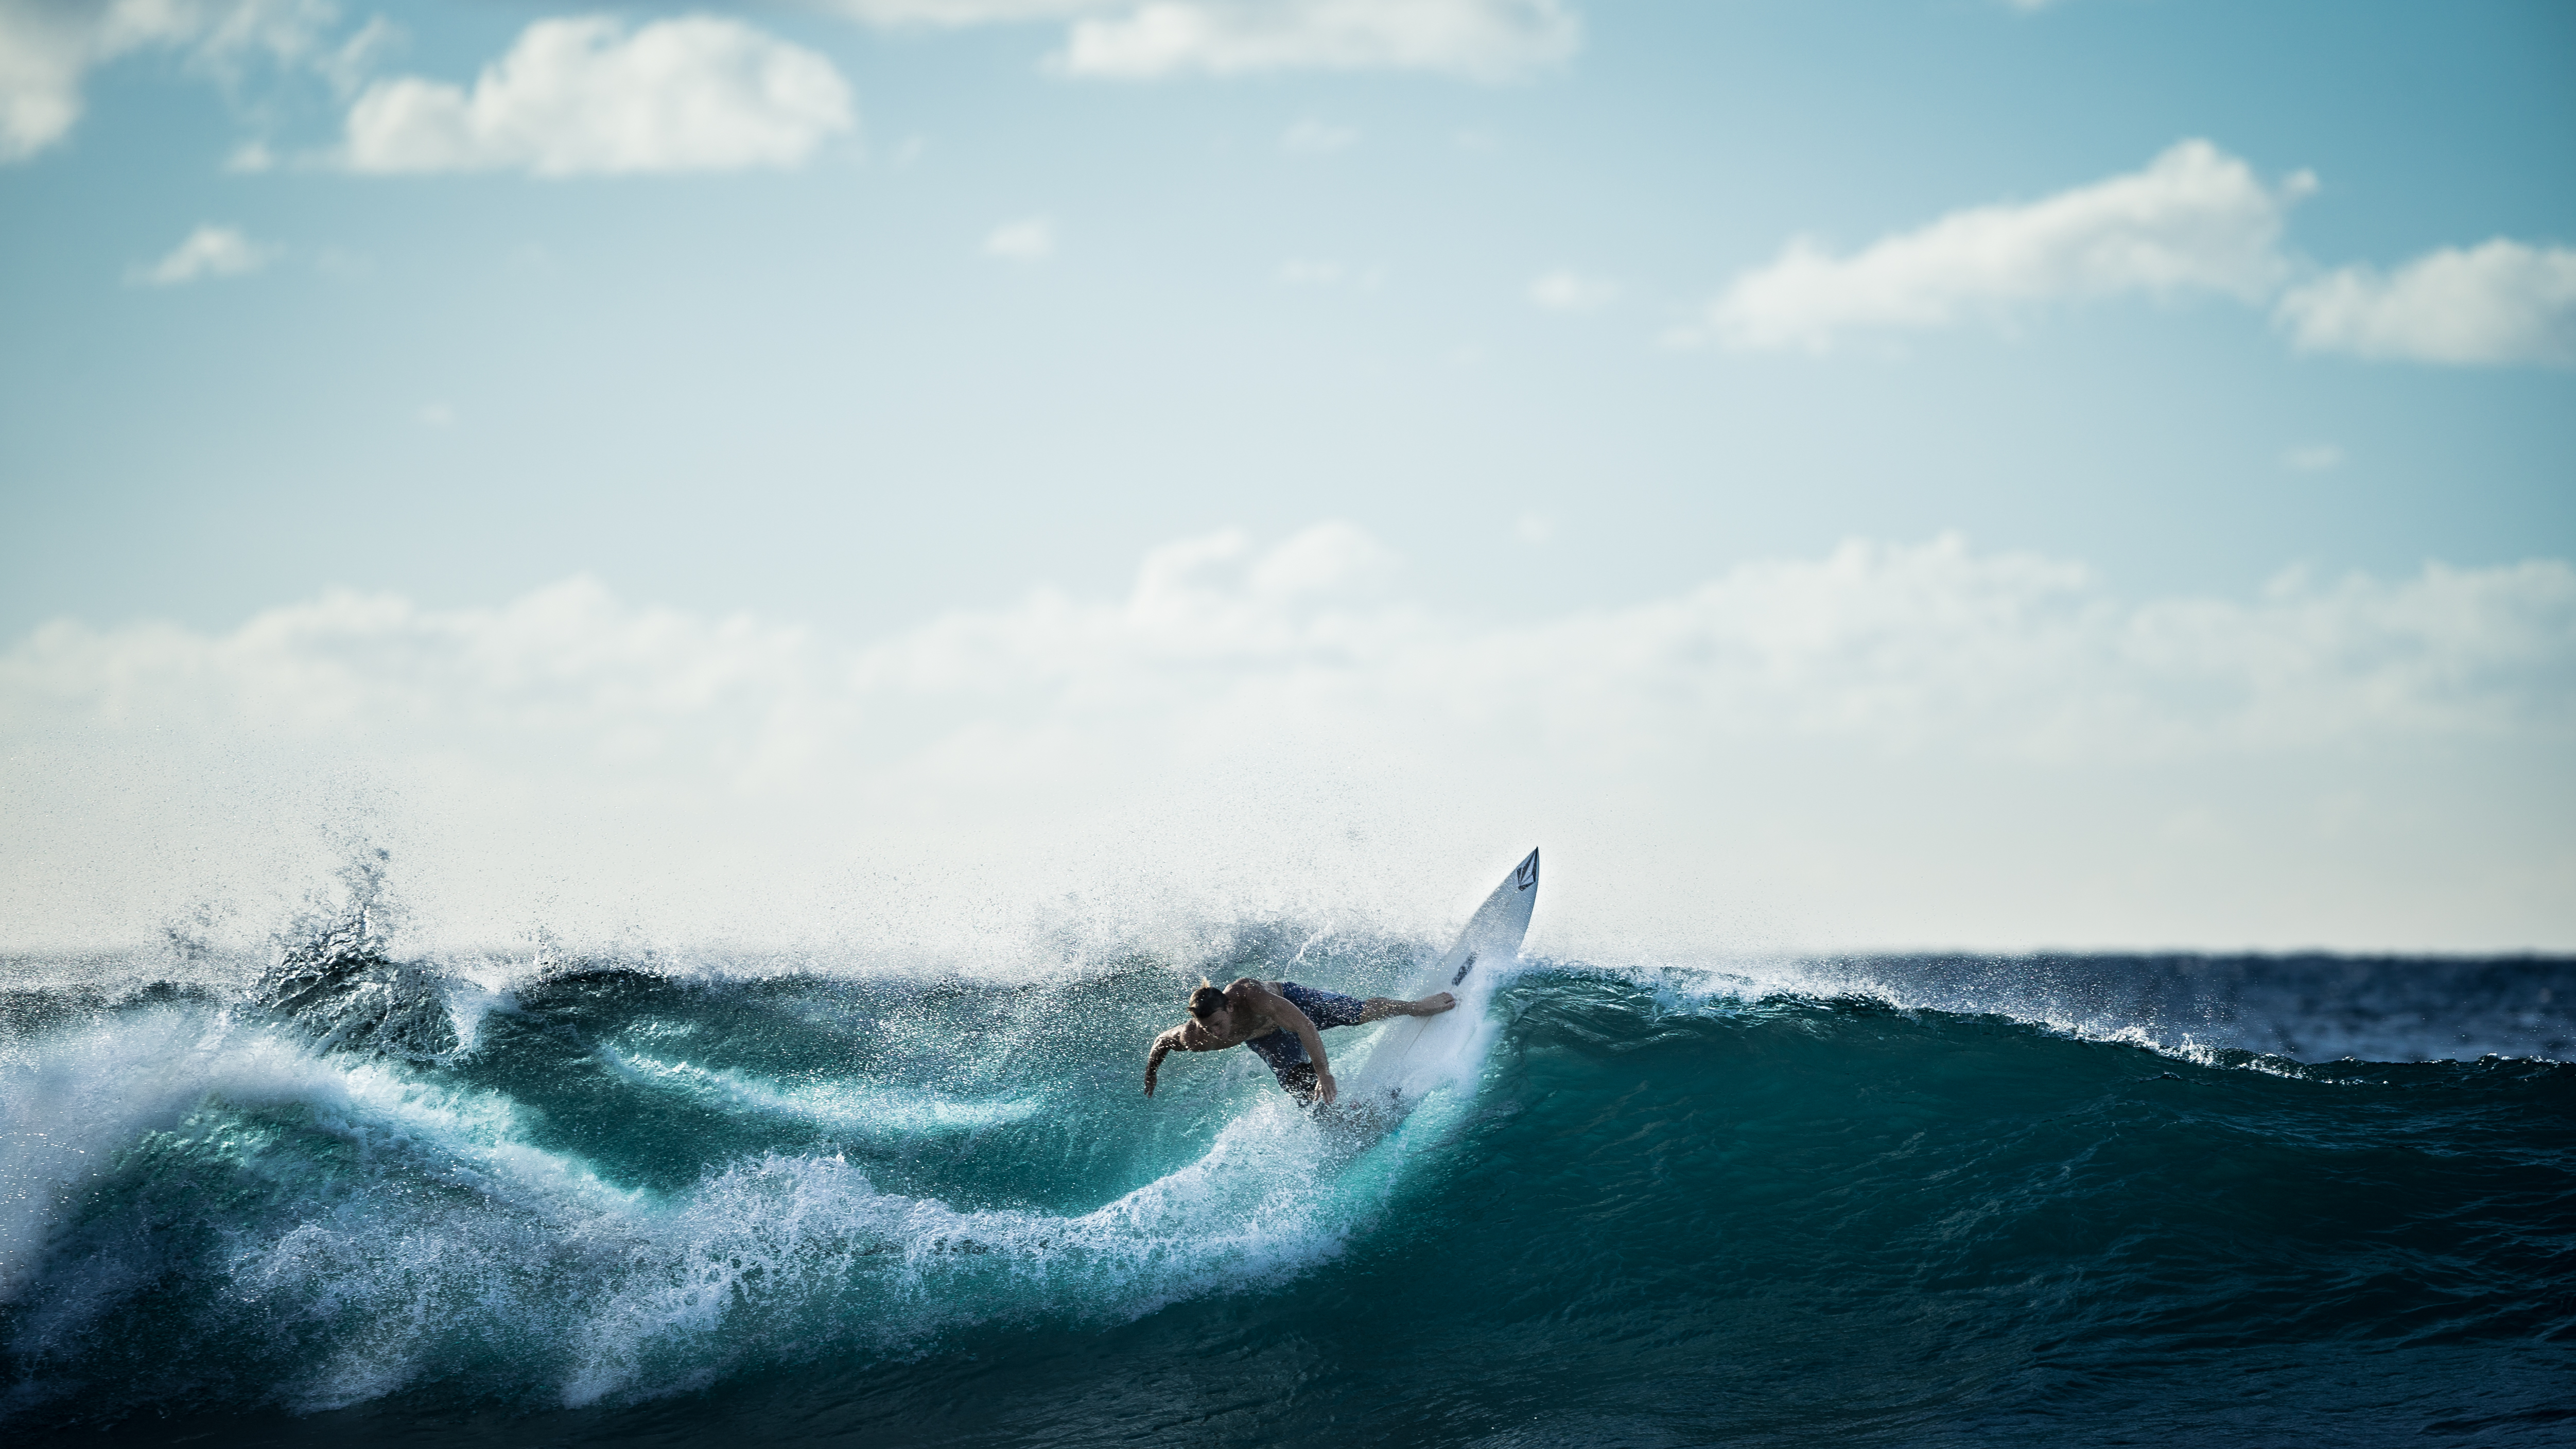 2015-04-Life-of-Pix-free-stock-photos-wave-sport-Surf-Hawaii-Andreas-Winter